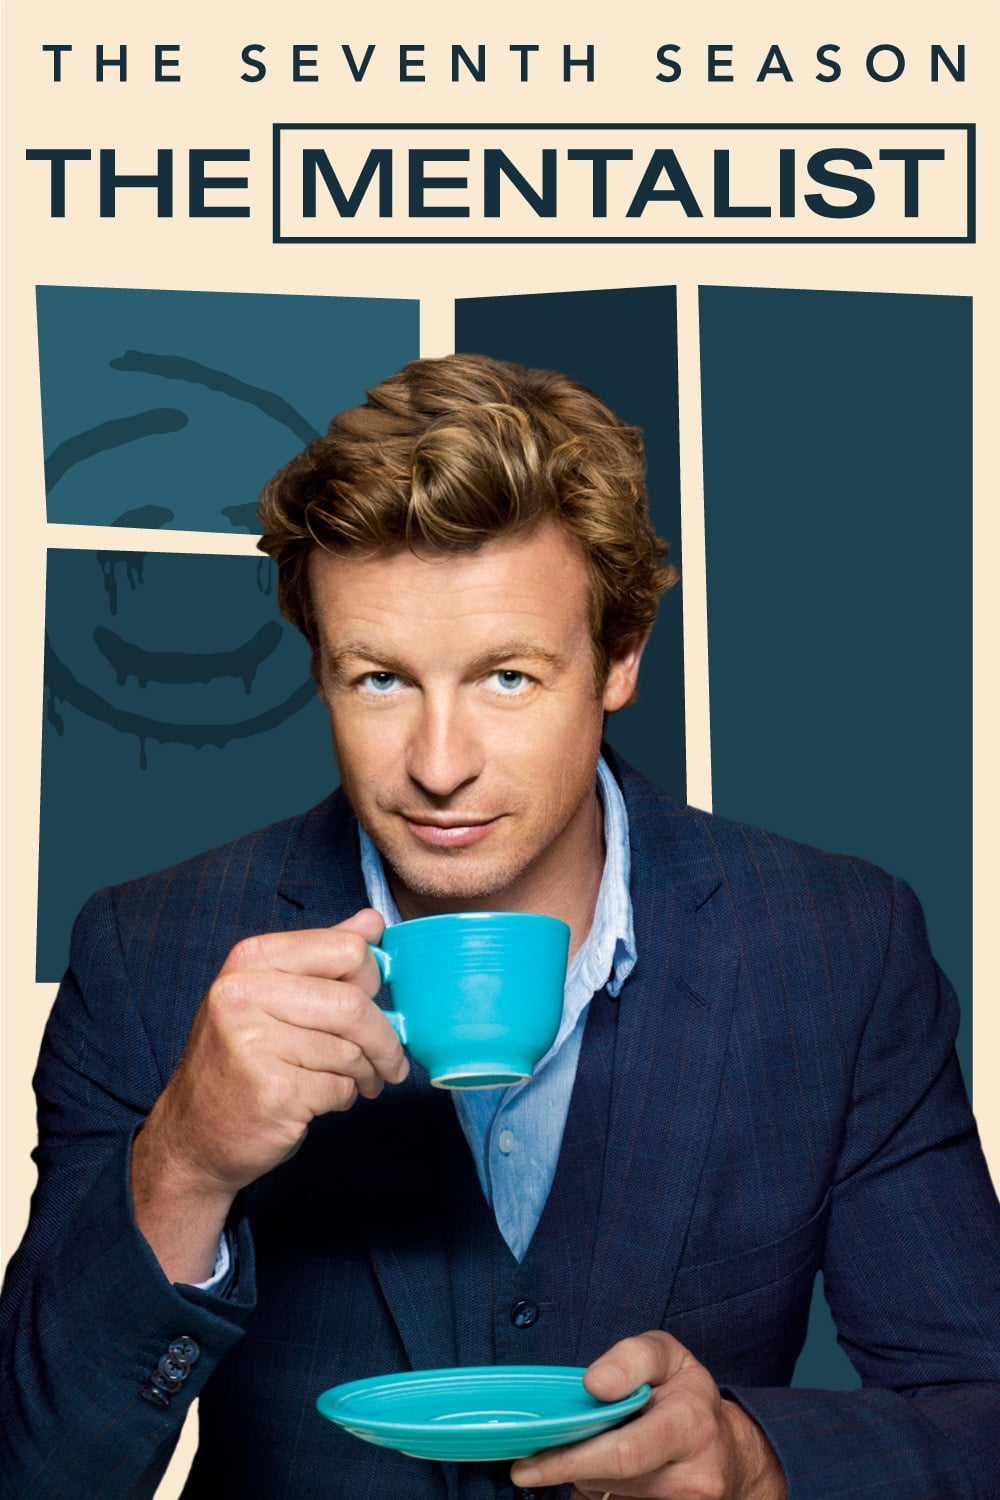 The Mentalist Season 7